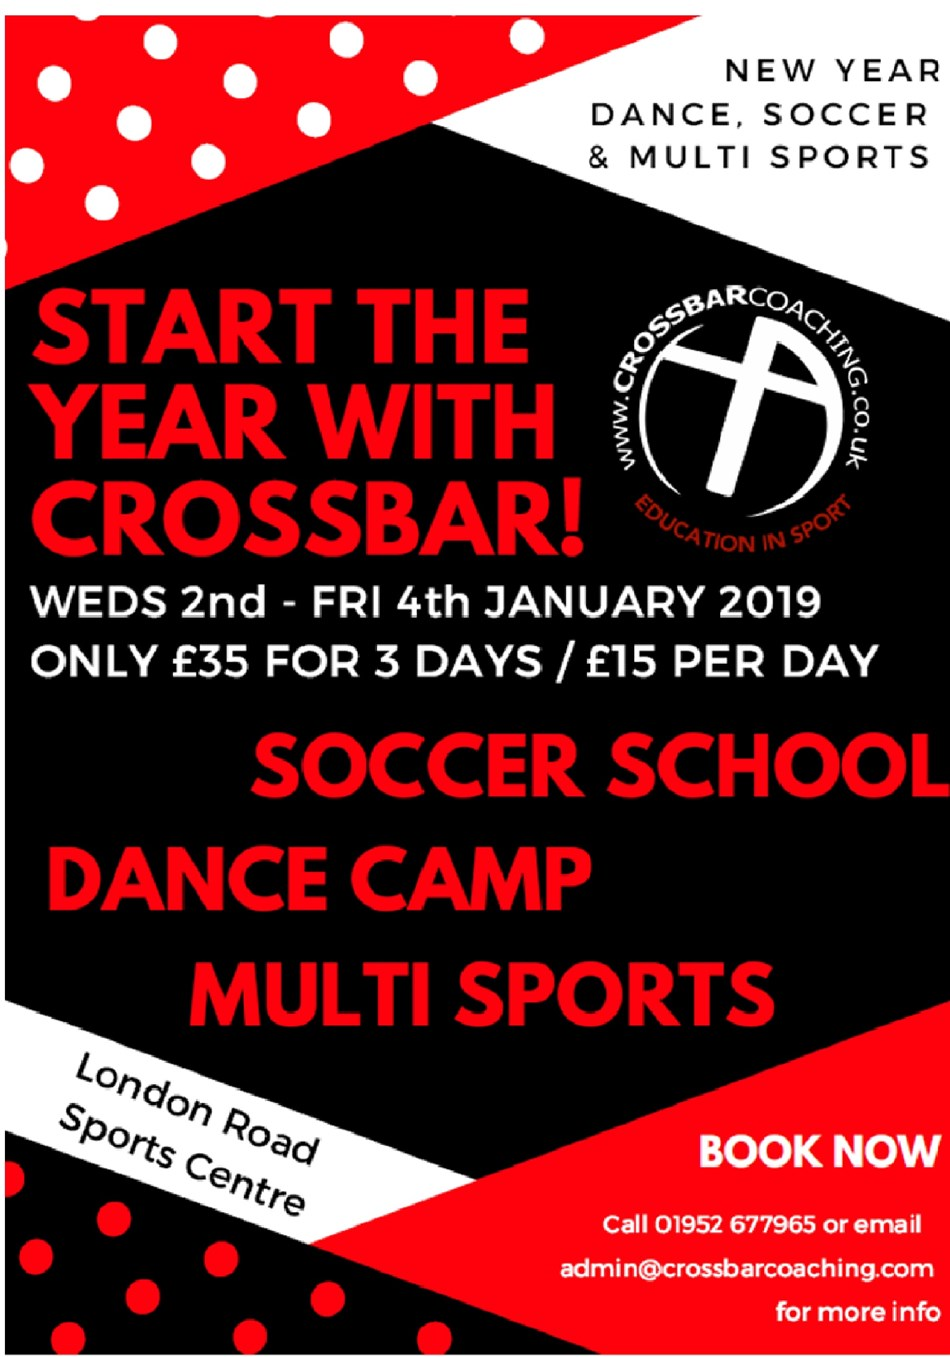 New Year Holiday Club with Crossbar Coaching